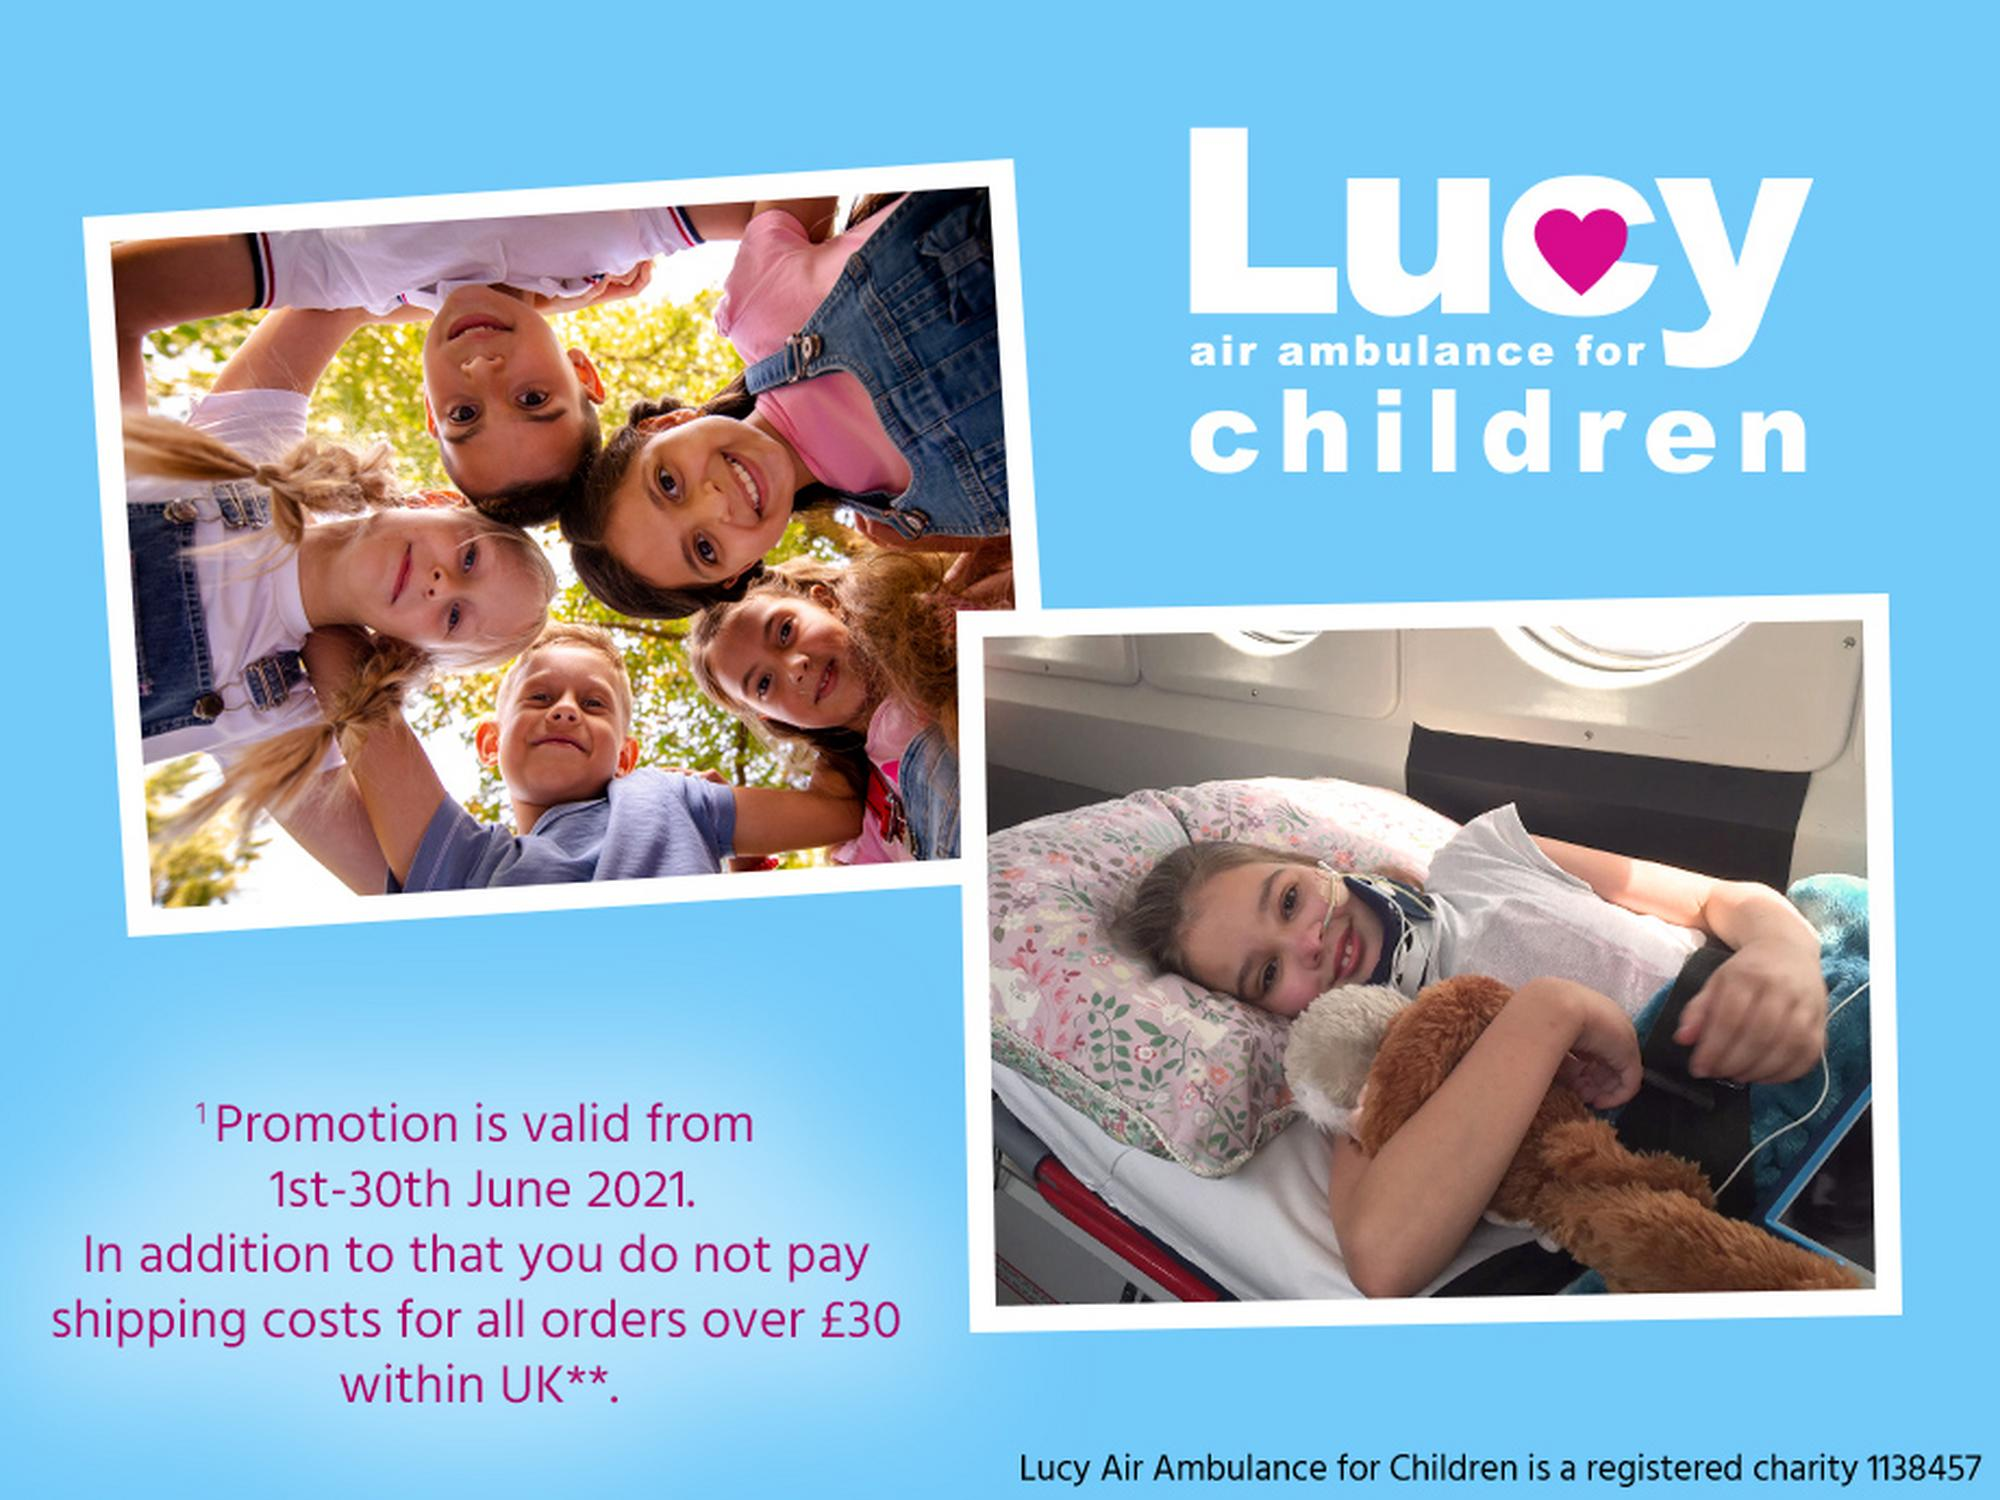 1% of your order will be donated to Lucy Air Ambulance for Children + Free delivery